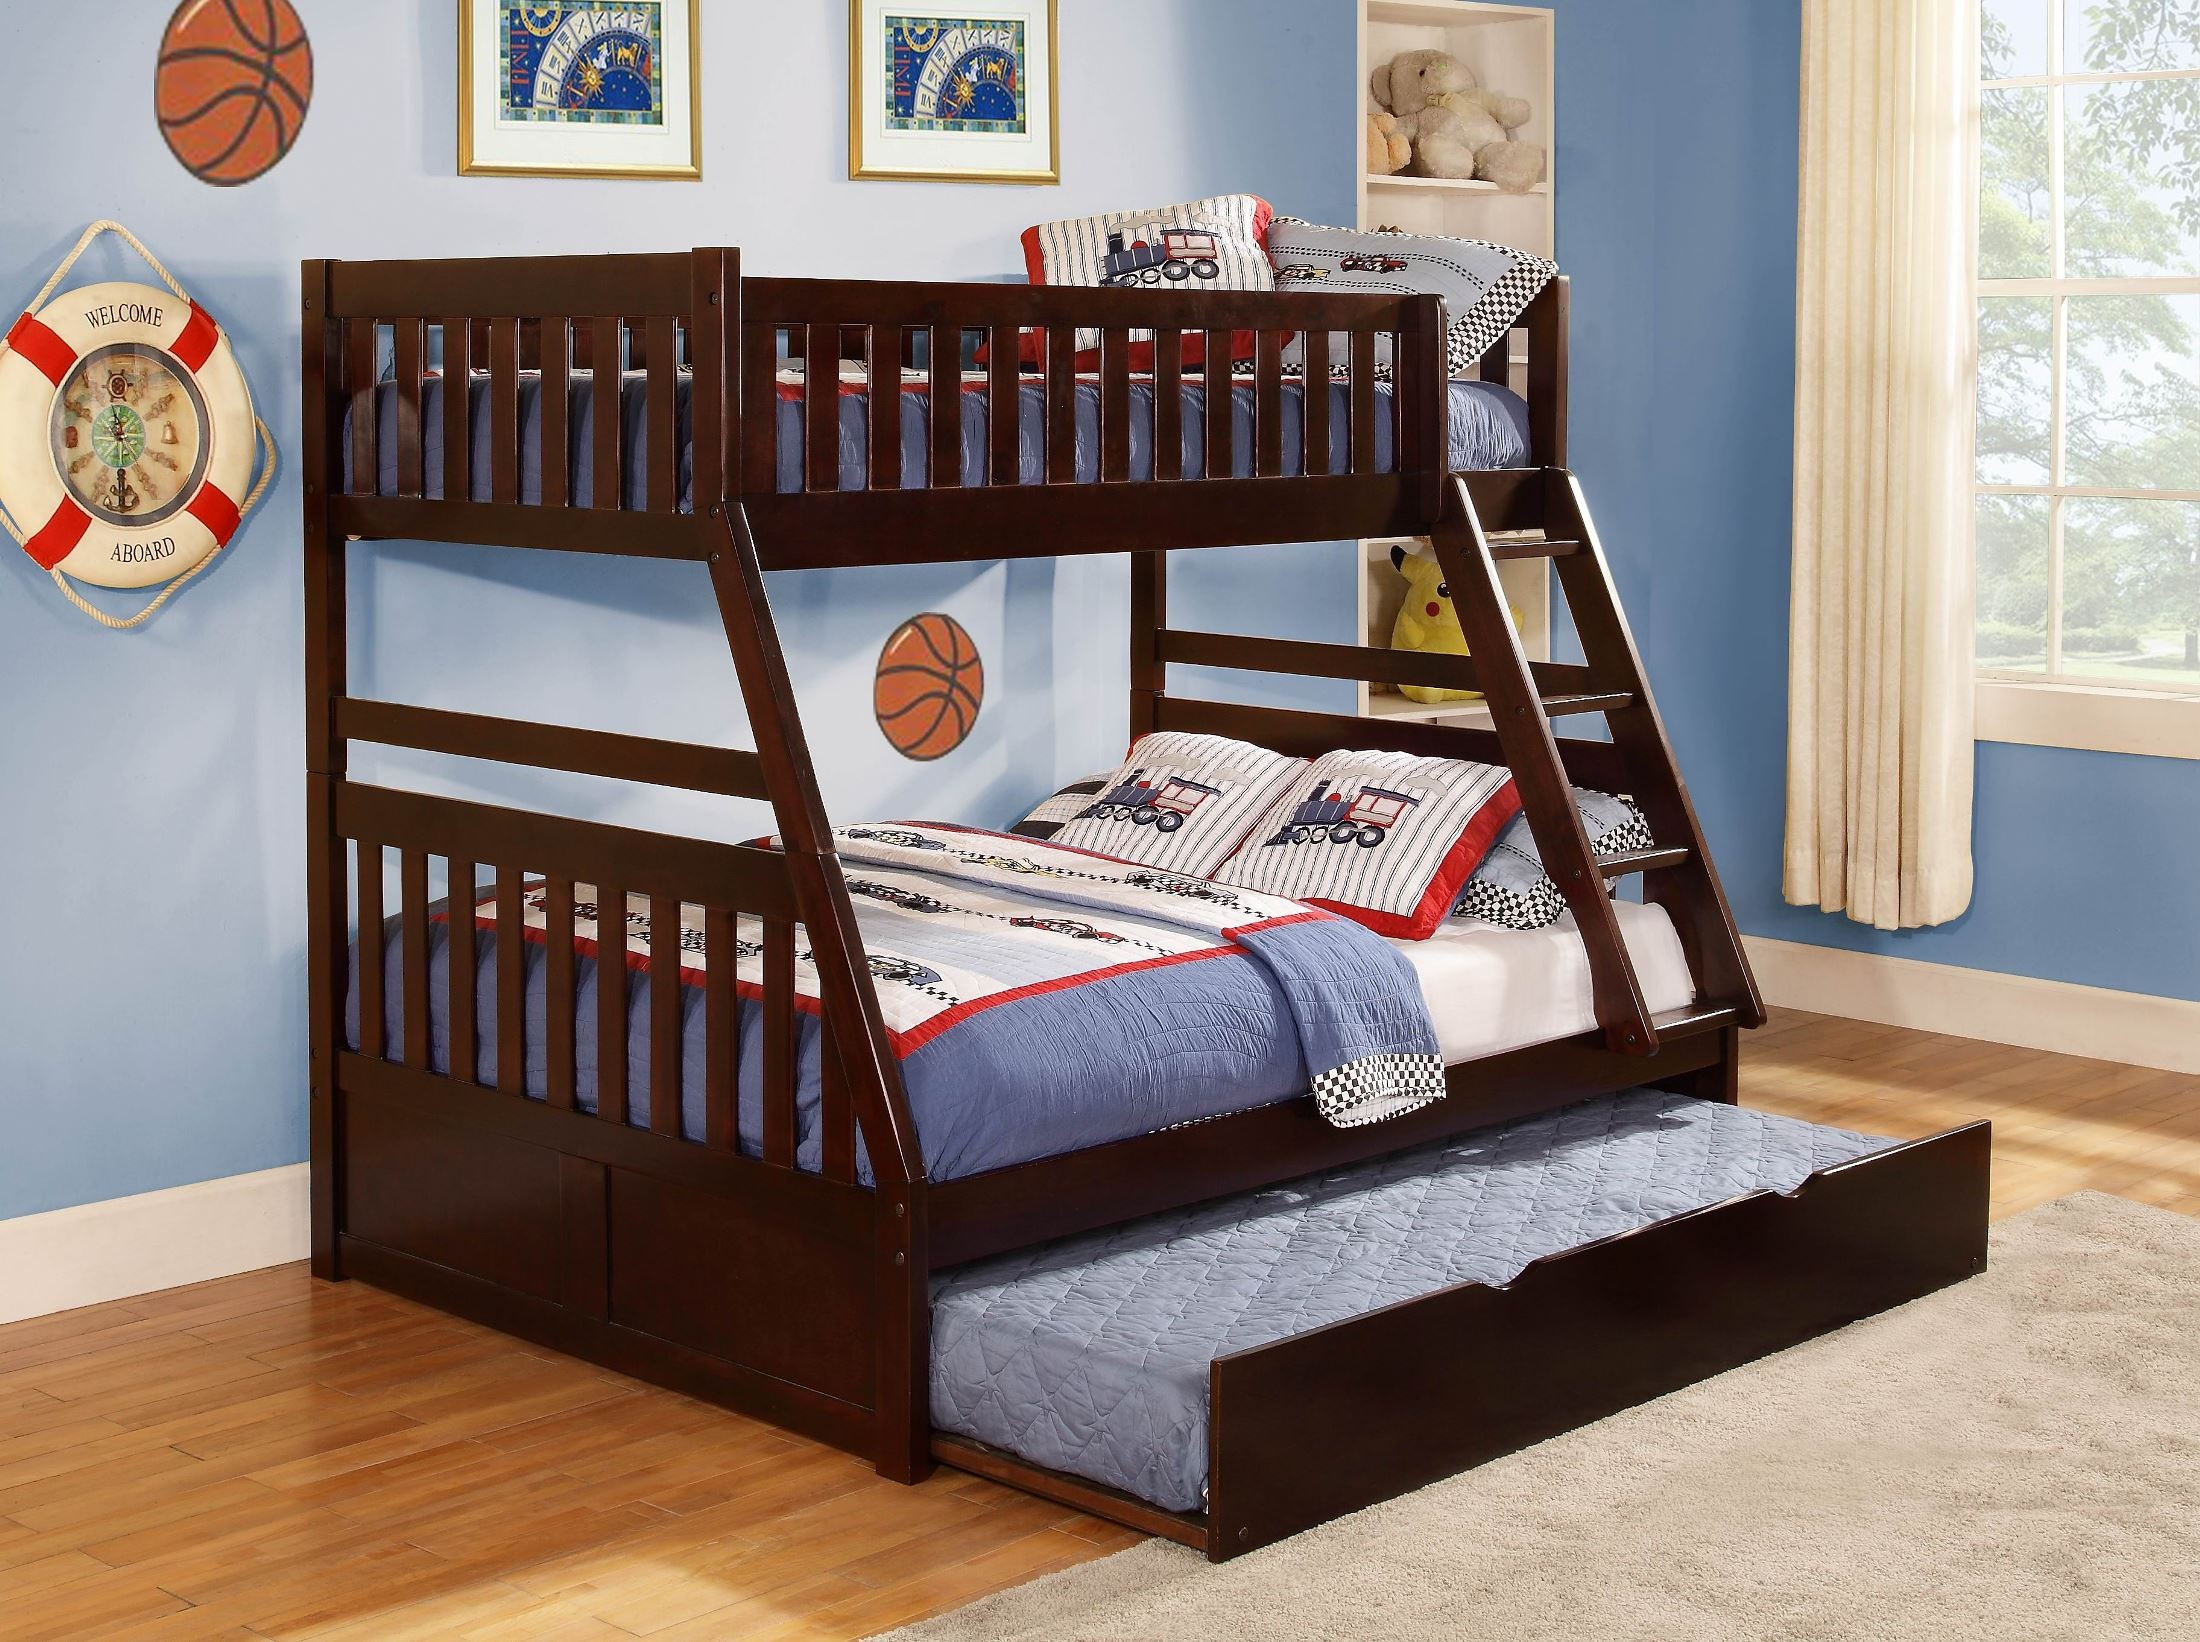 Double Bunk Beds Rowe Twin Over Full Bunk Bed From Homelegance B2013tfdc 1